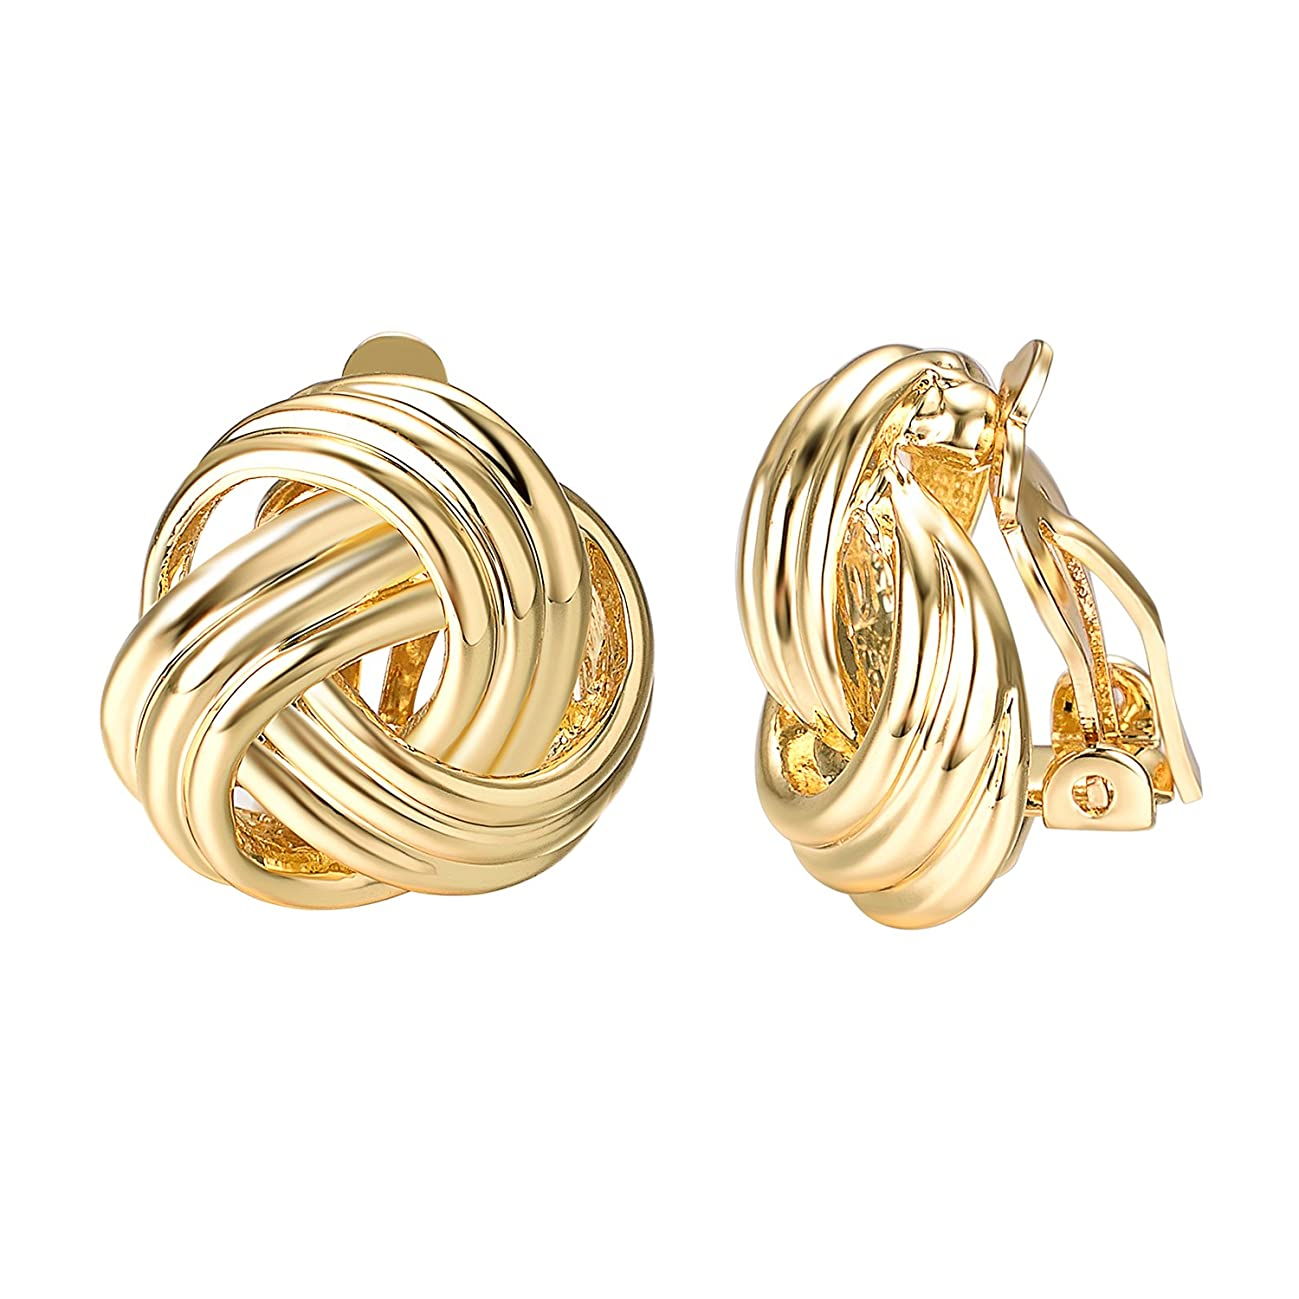 Yoursfs Knot Clip On Earrings For Women Fashion 18k White/Yellow Gold Plated Endless Love Earrings